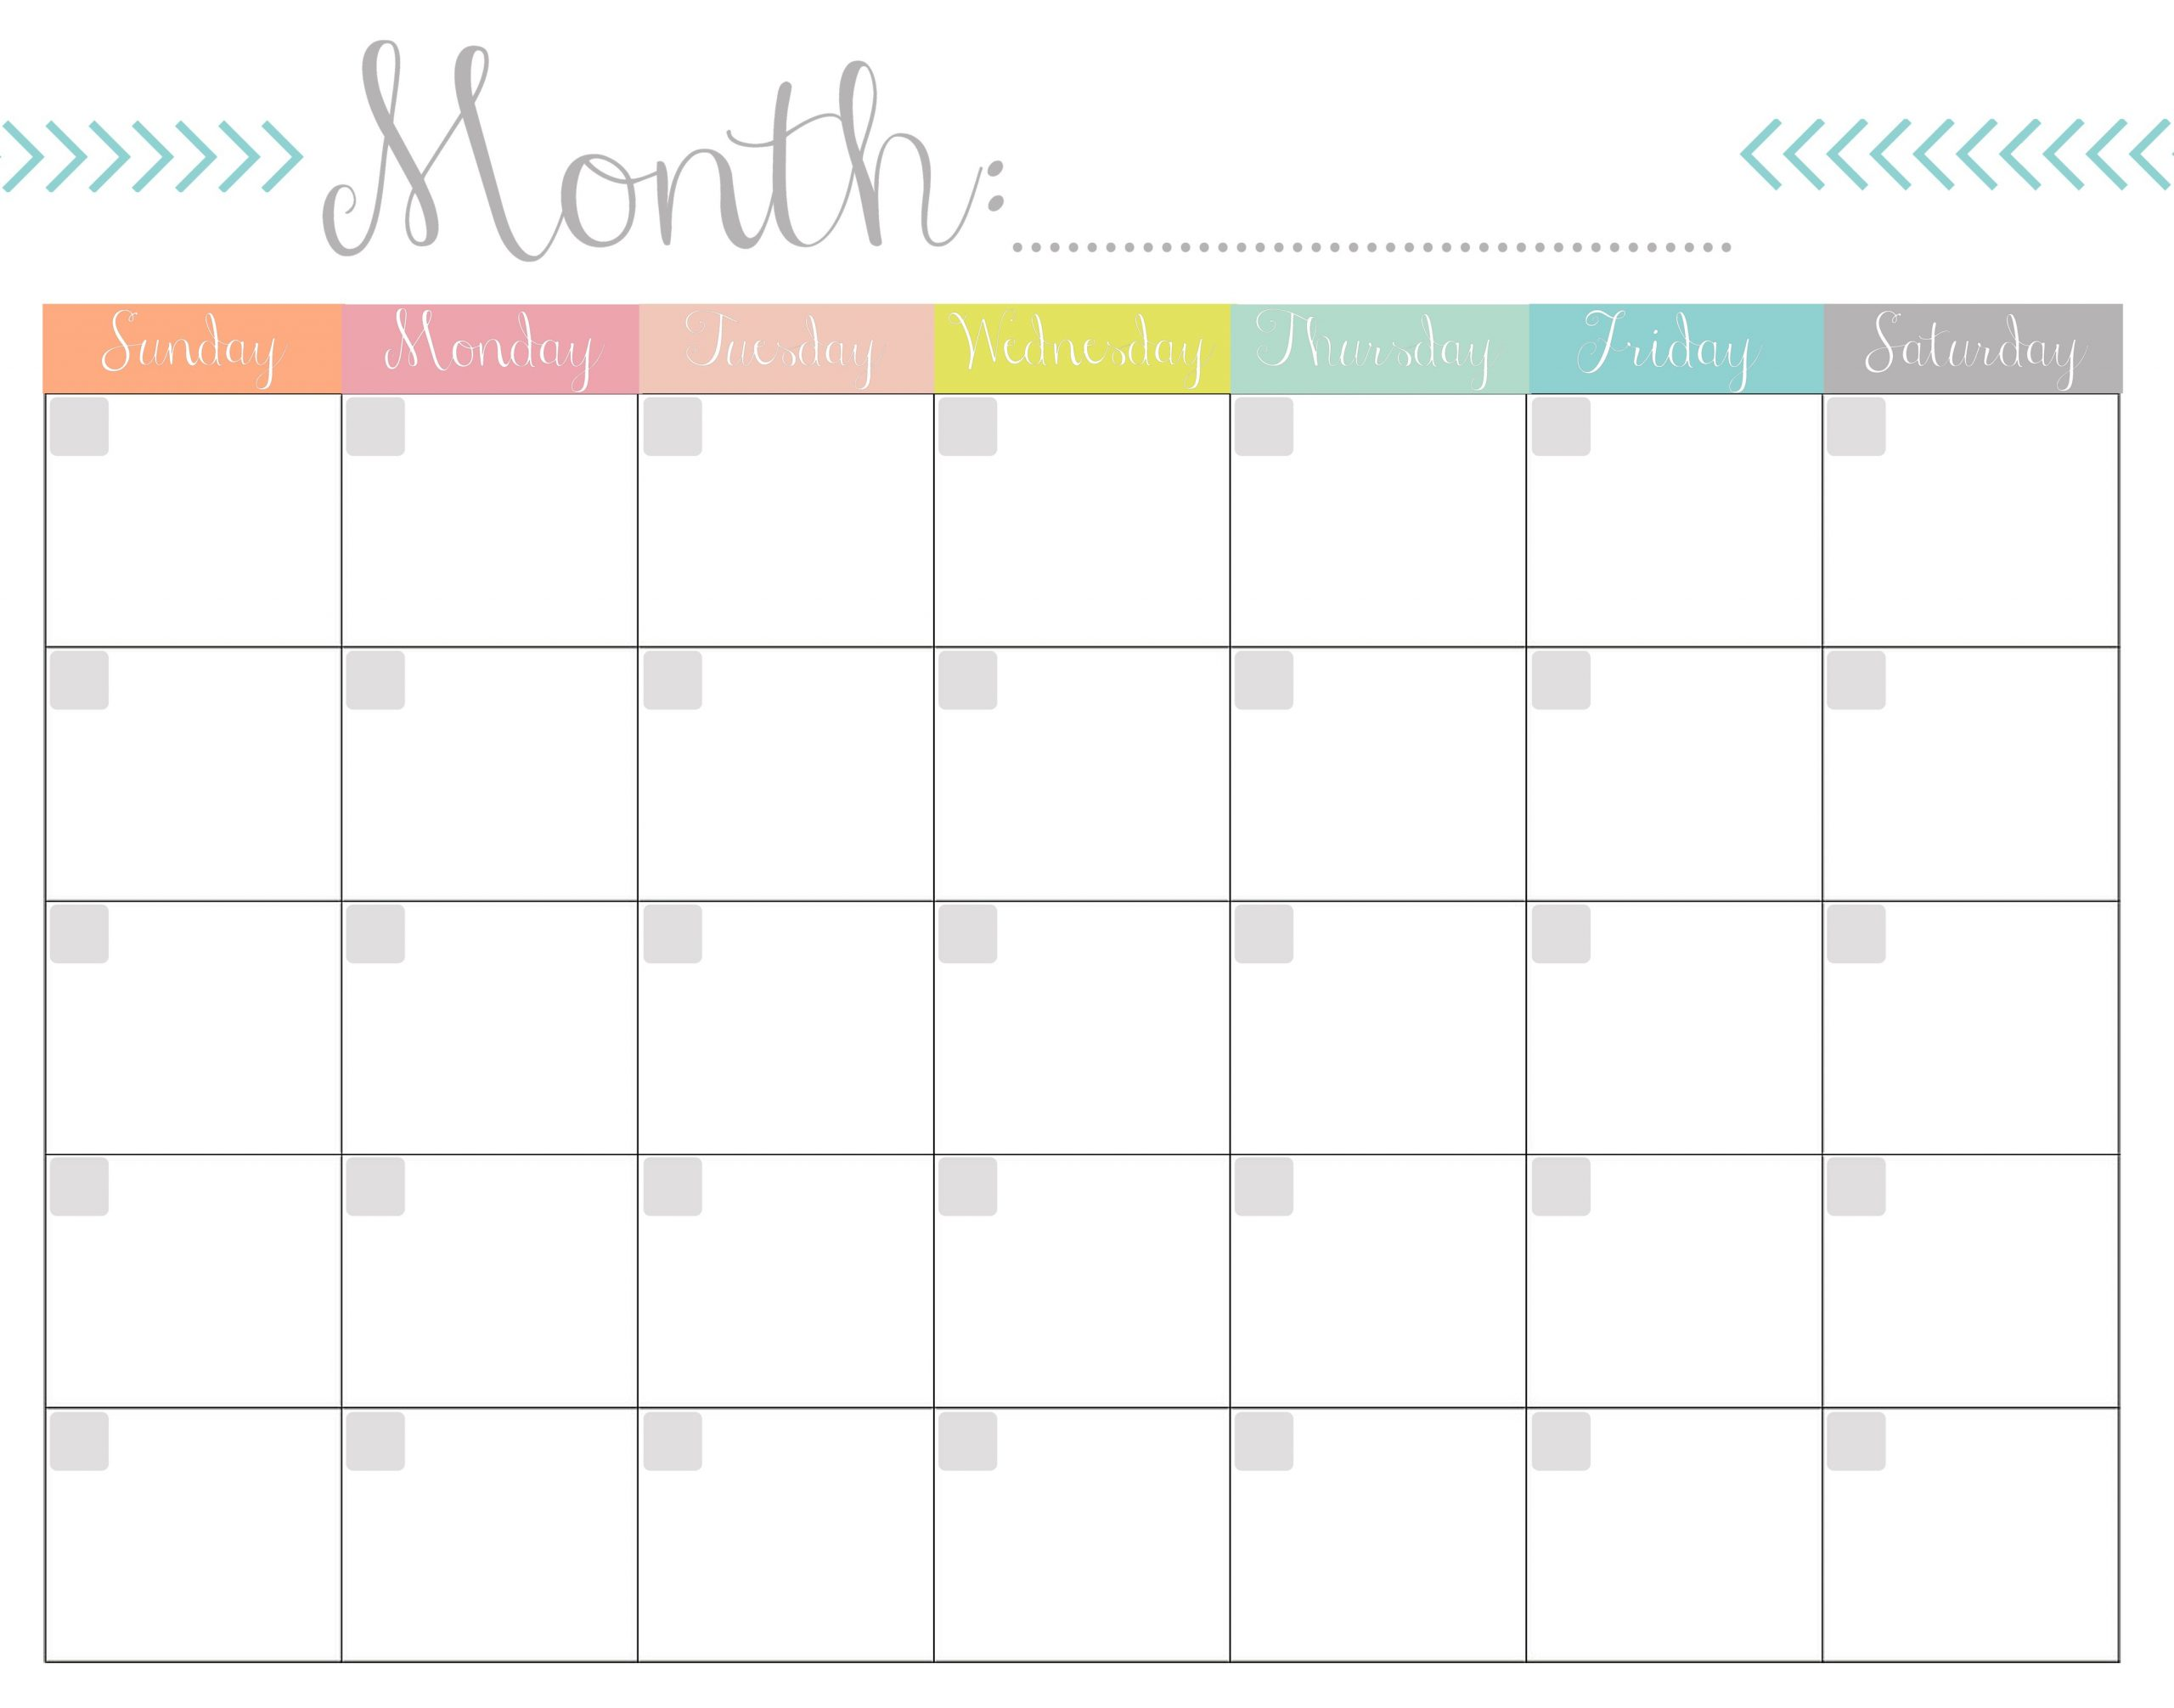 Importance Of Pre-Booking – Phoenix, A Salon Printale Calendar Fill In